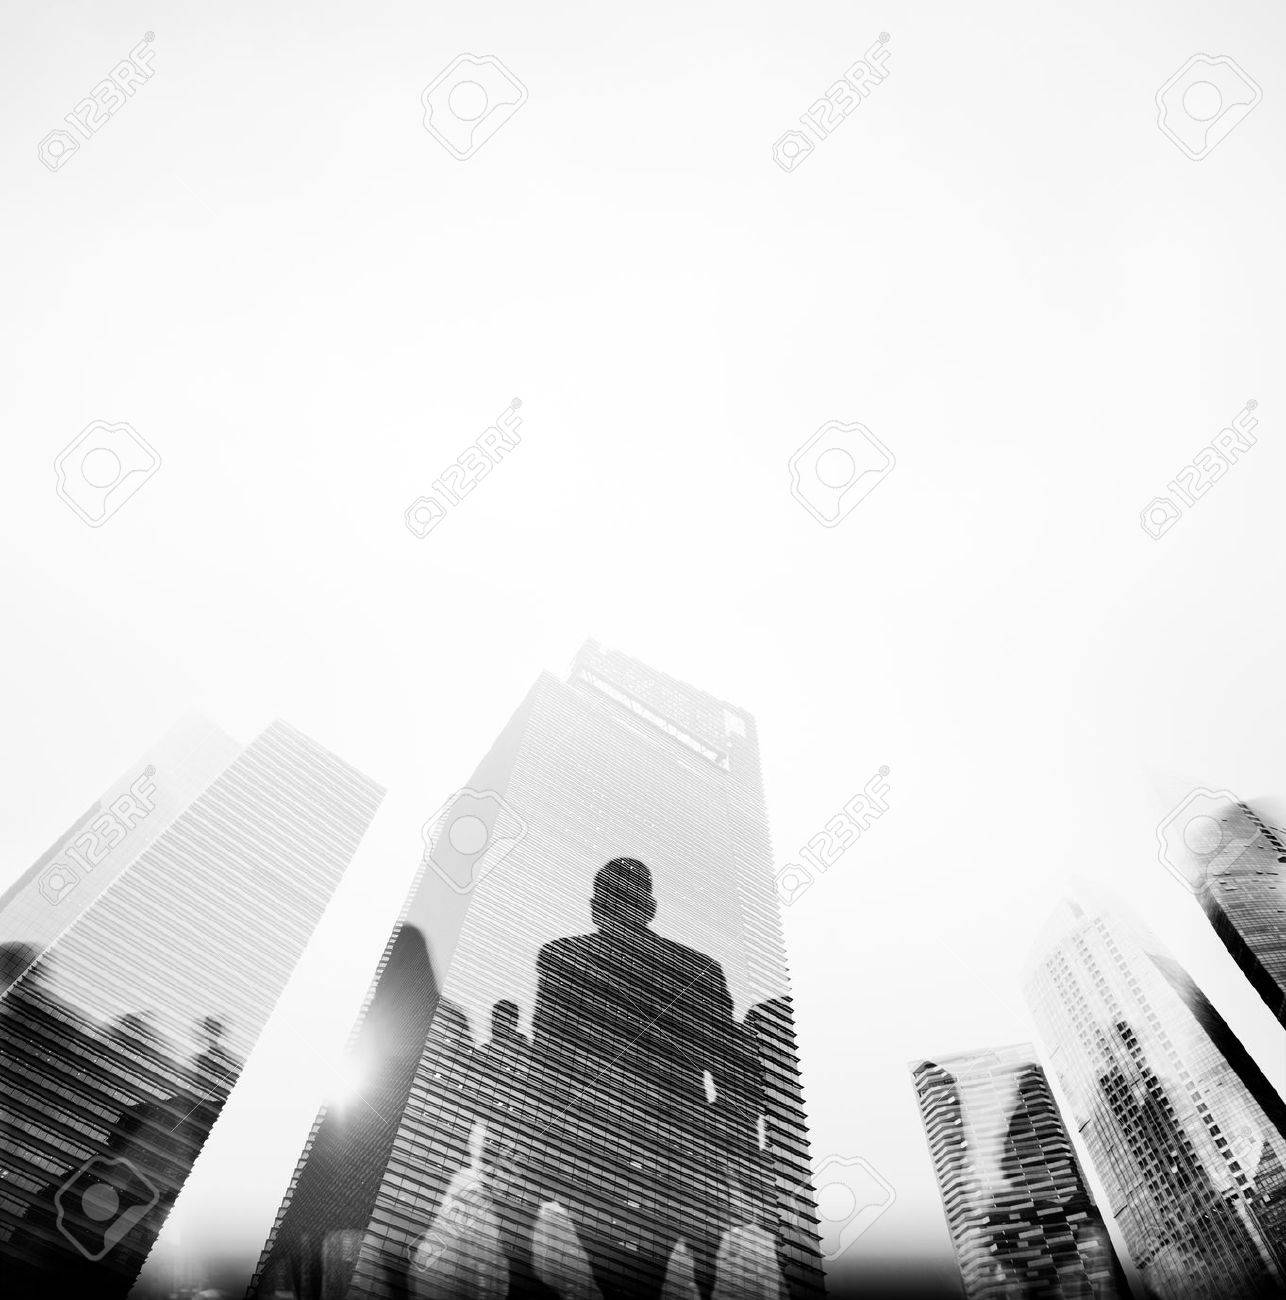 Business People Rush Hour Walking Commuting City Concept - 49915925